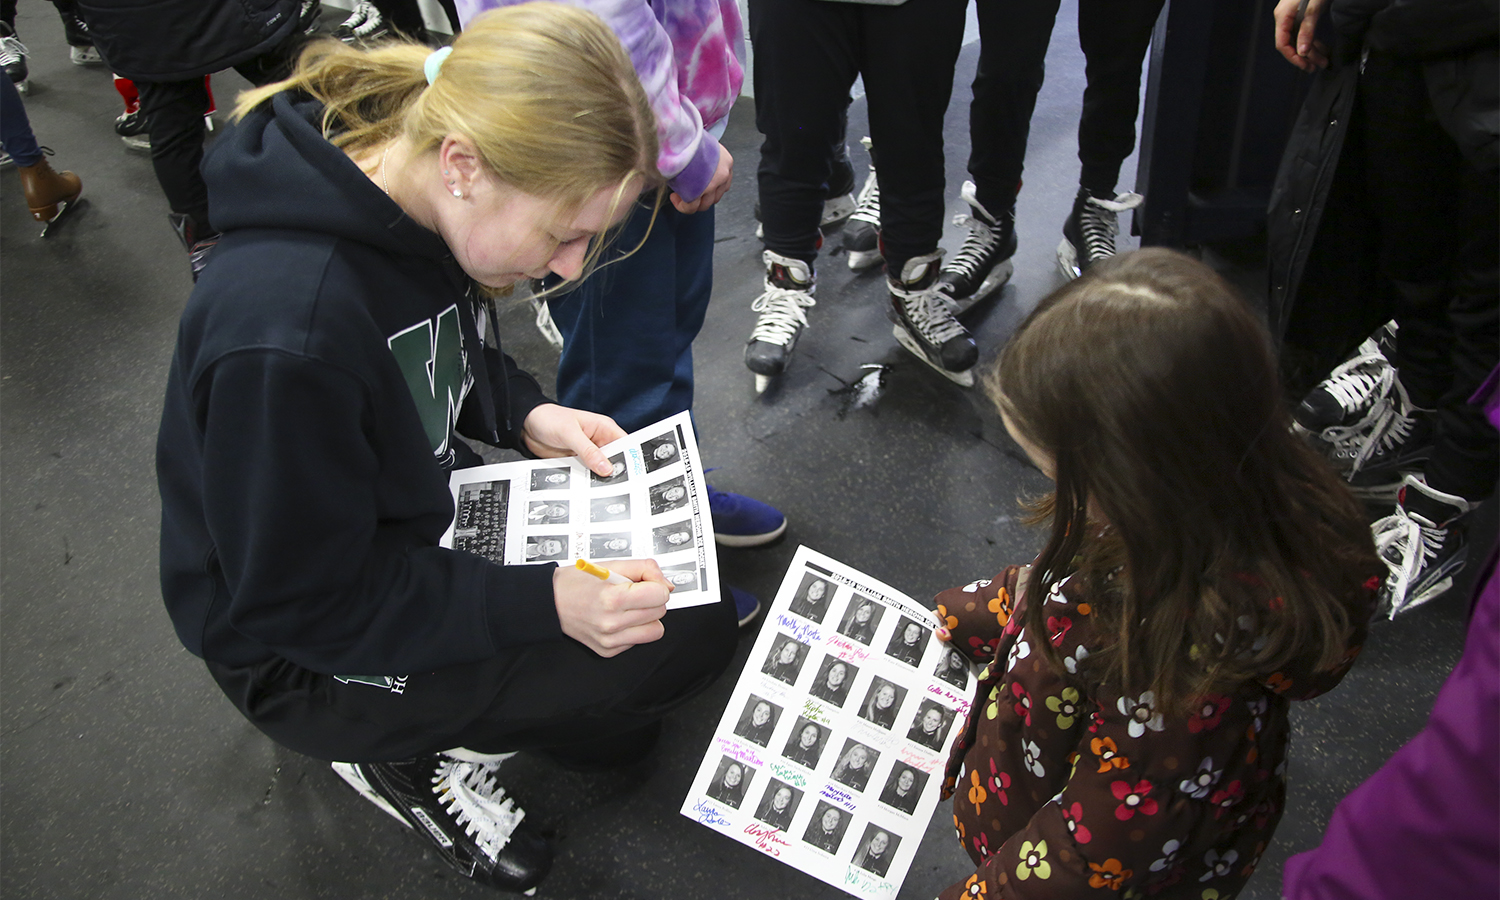 Anna Krajewski '22 meets a fan and signs her photo on the William Smith Ice Hockey roster after Community Skate.